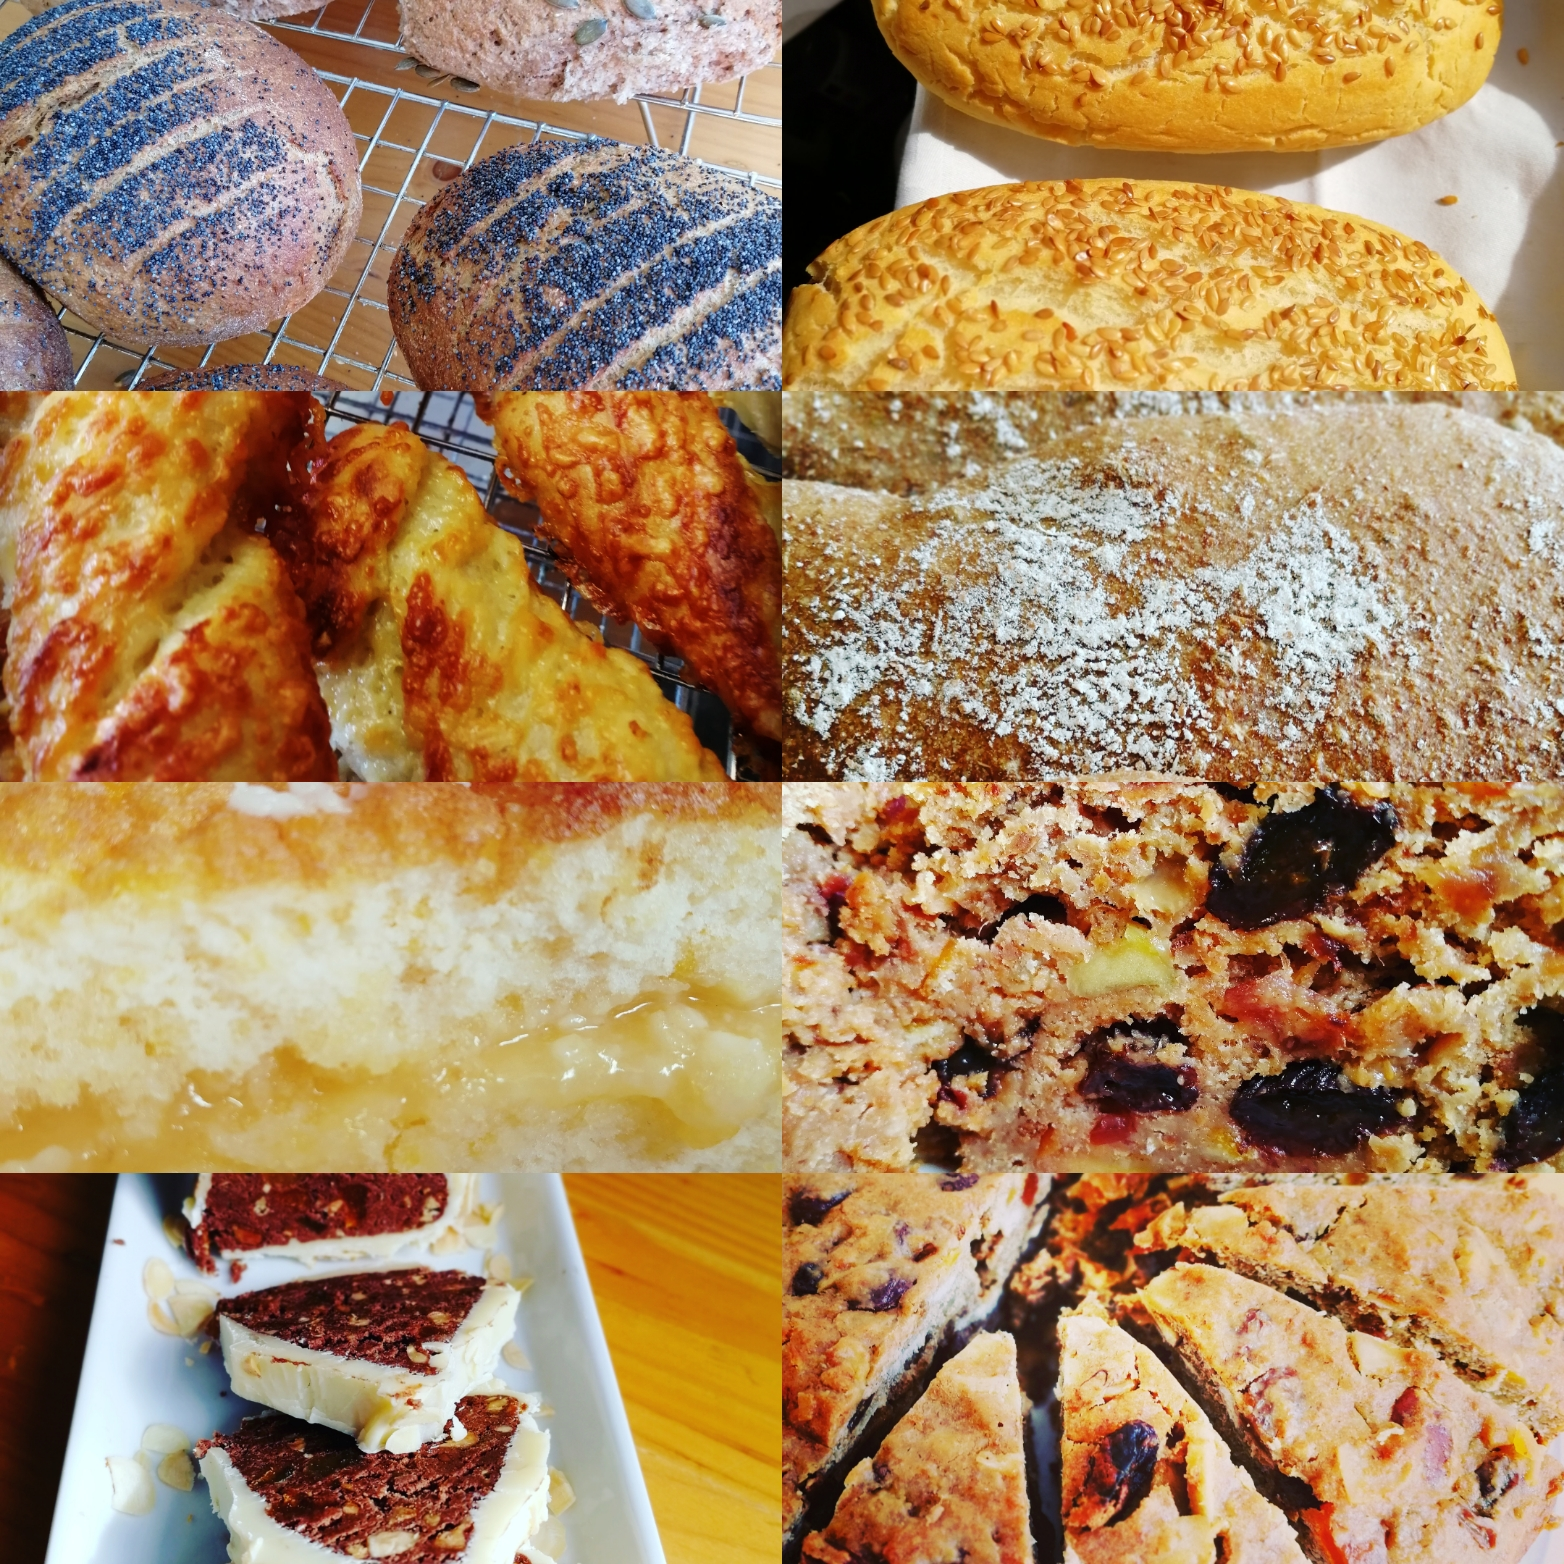 Home made, bread, cakes, chocolates, glutenfree included,